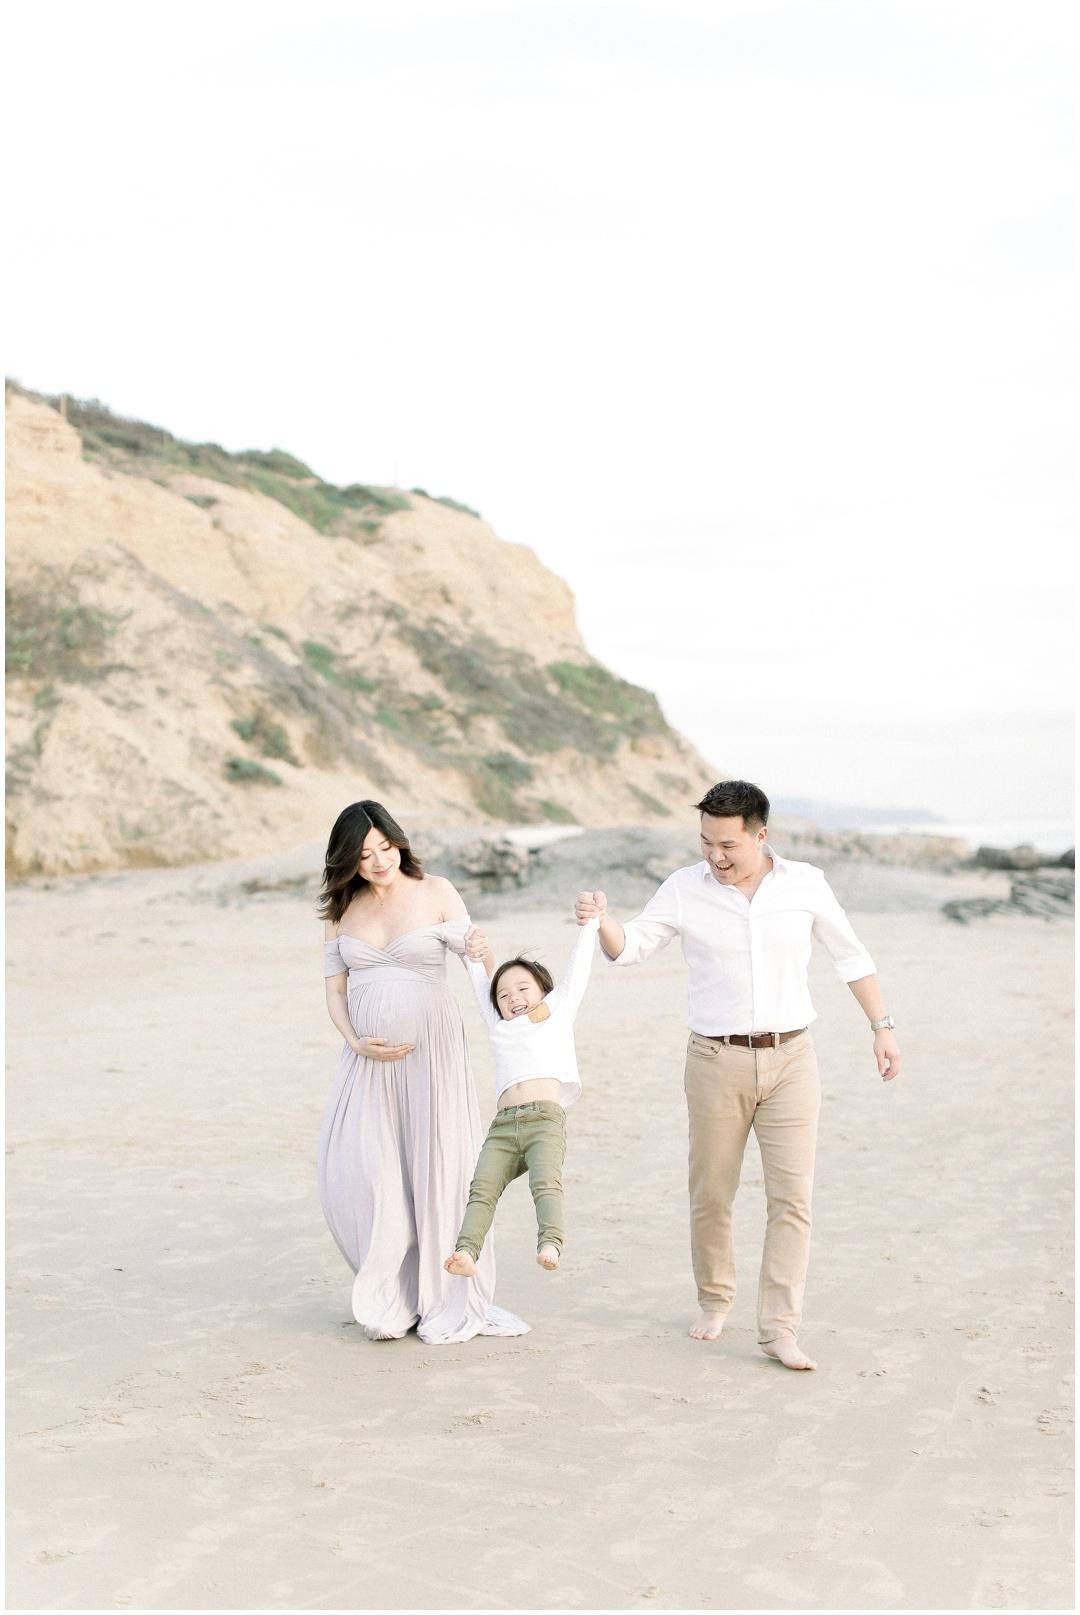 Newport_Beach_Newborn_Photographer_Newport_Beach_Maternity_Photographer_Orange_County_Family_Photographer_Cori_Kleckner_Photography_Huntington_Beach_Photographer_The_Perez_Family_OC_Maternity__2986.jpg